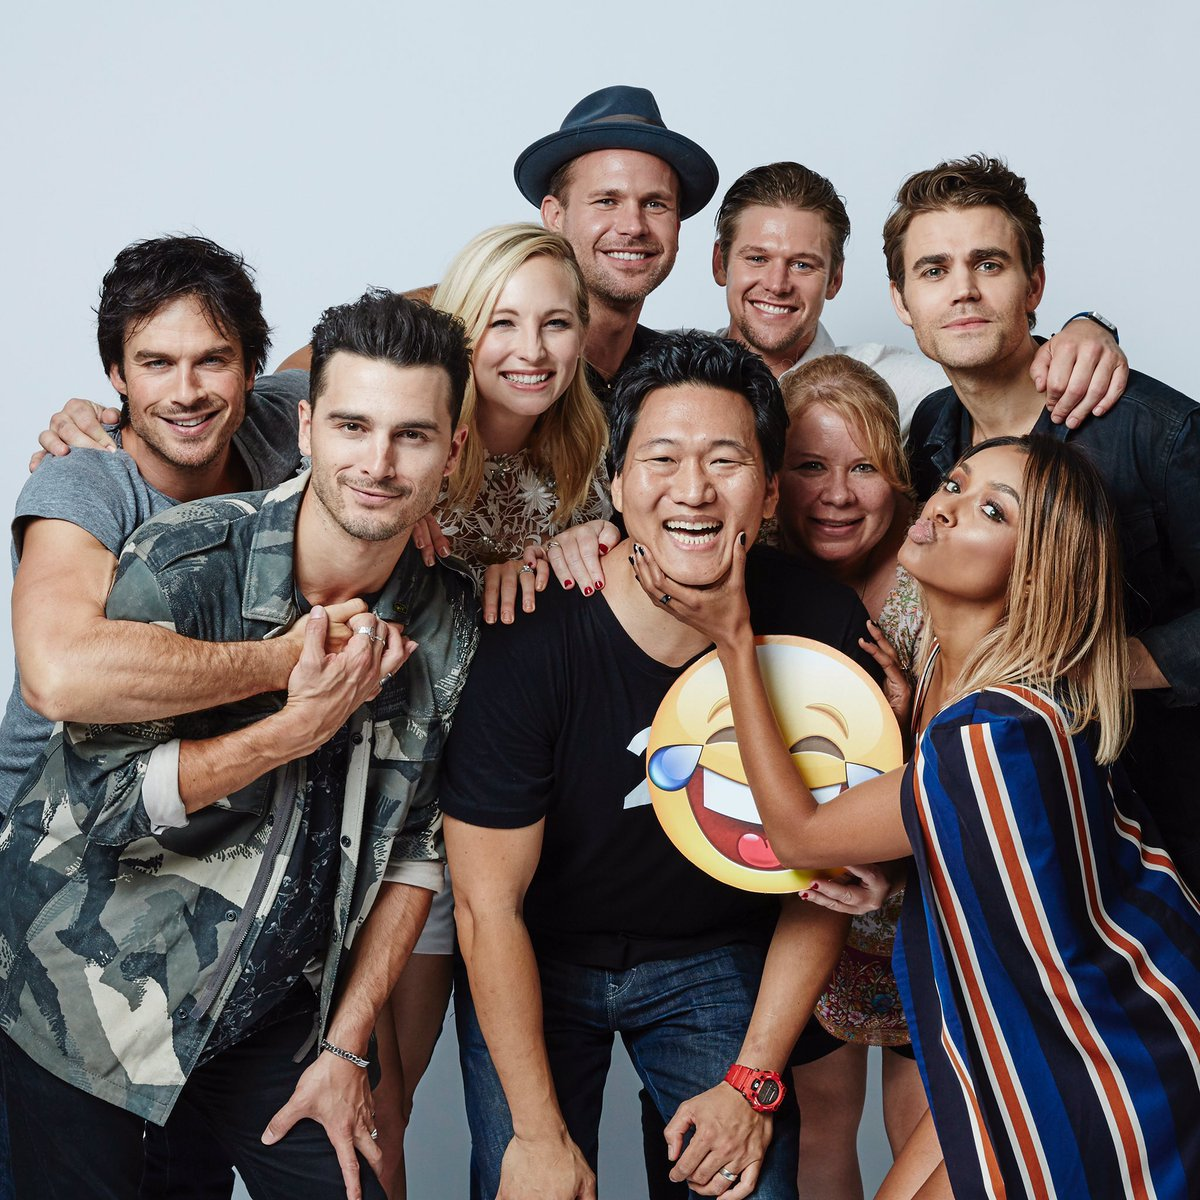 Had no idea I'd be so emotional yesterday, last #TVD #WBSDCC. Will miss this cast. #TVDForever @Raskindphoto https://t.co/AJRUB8b9KU